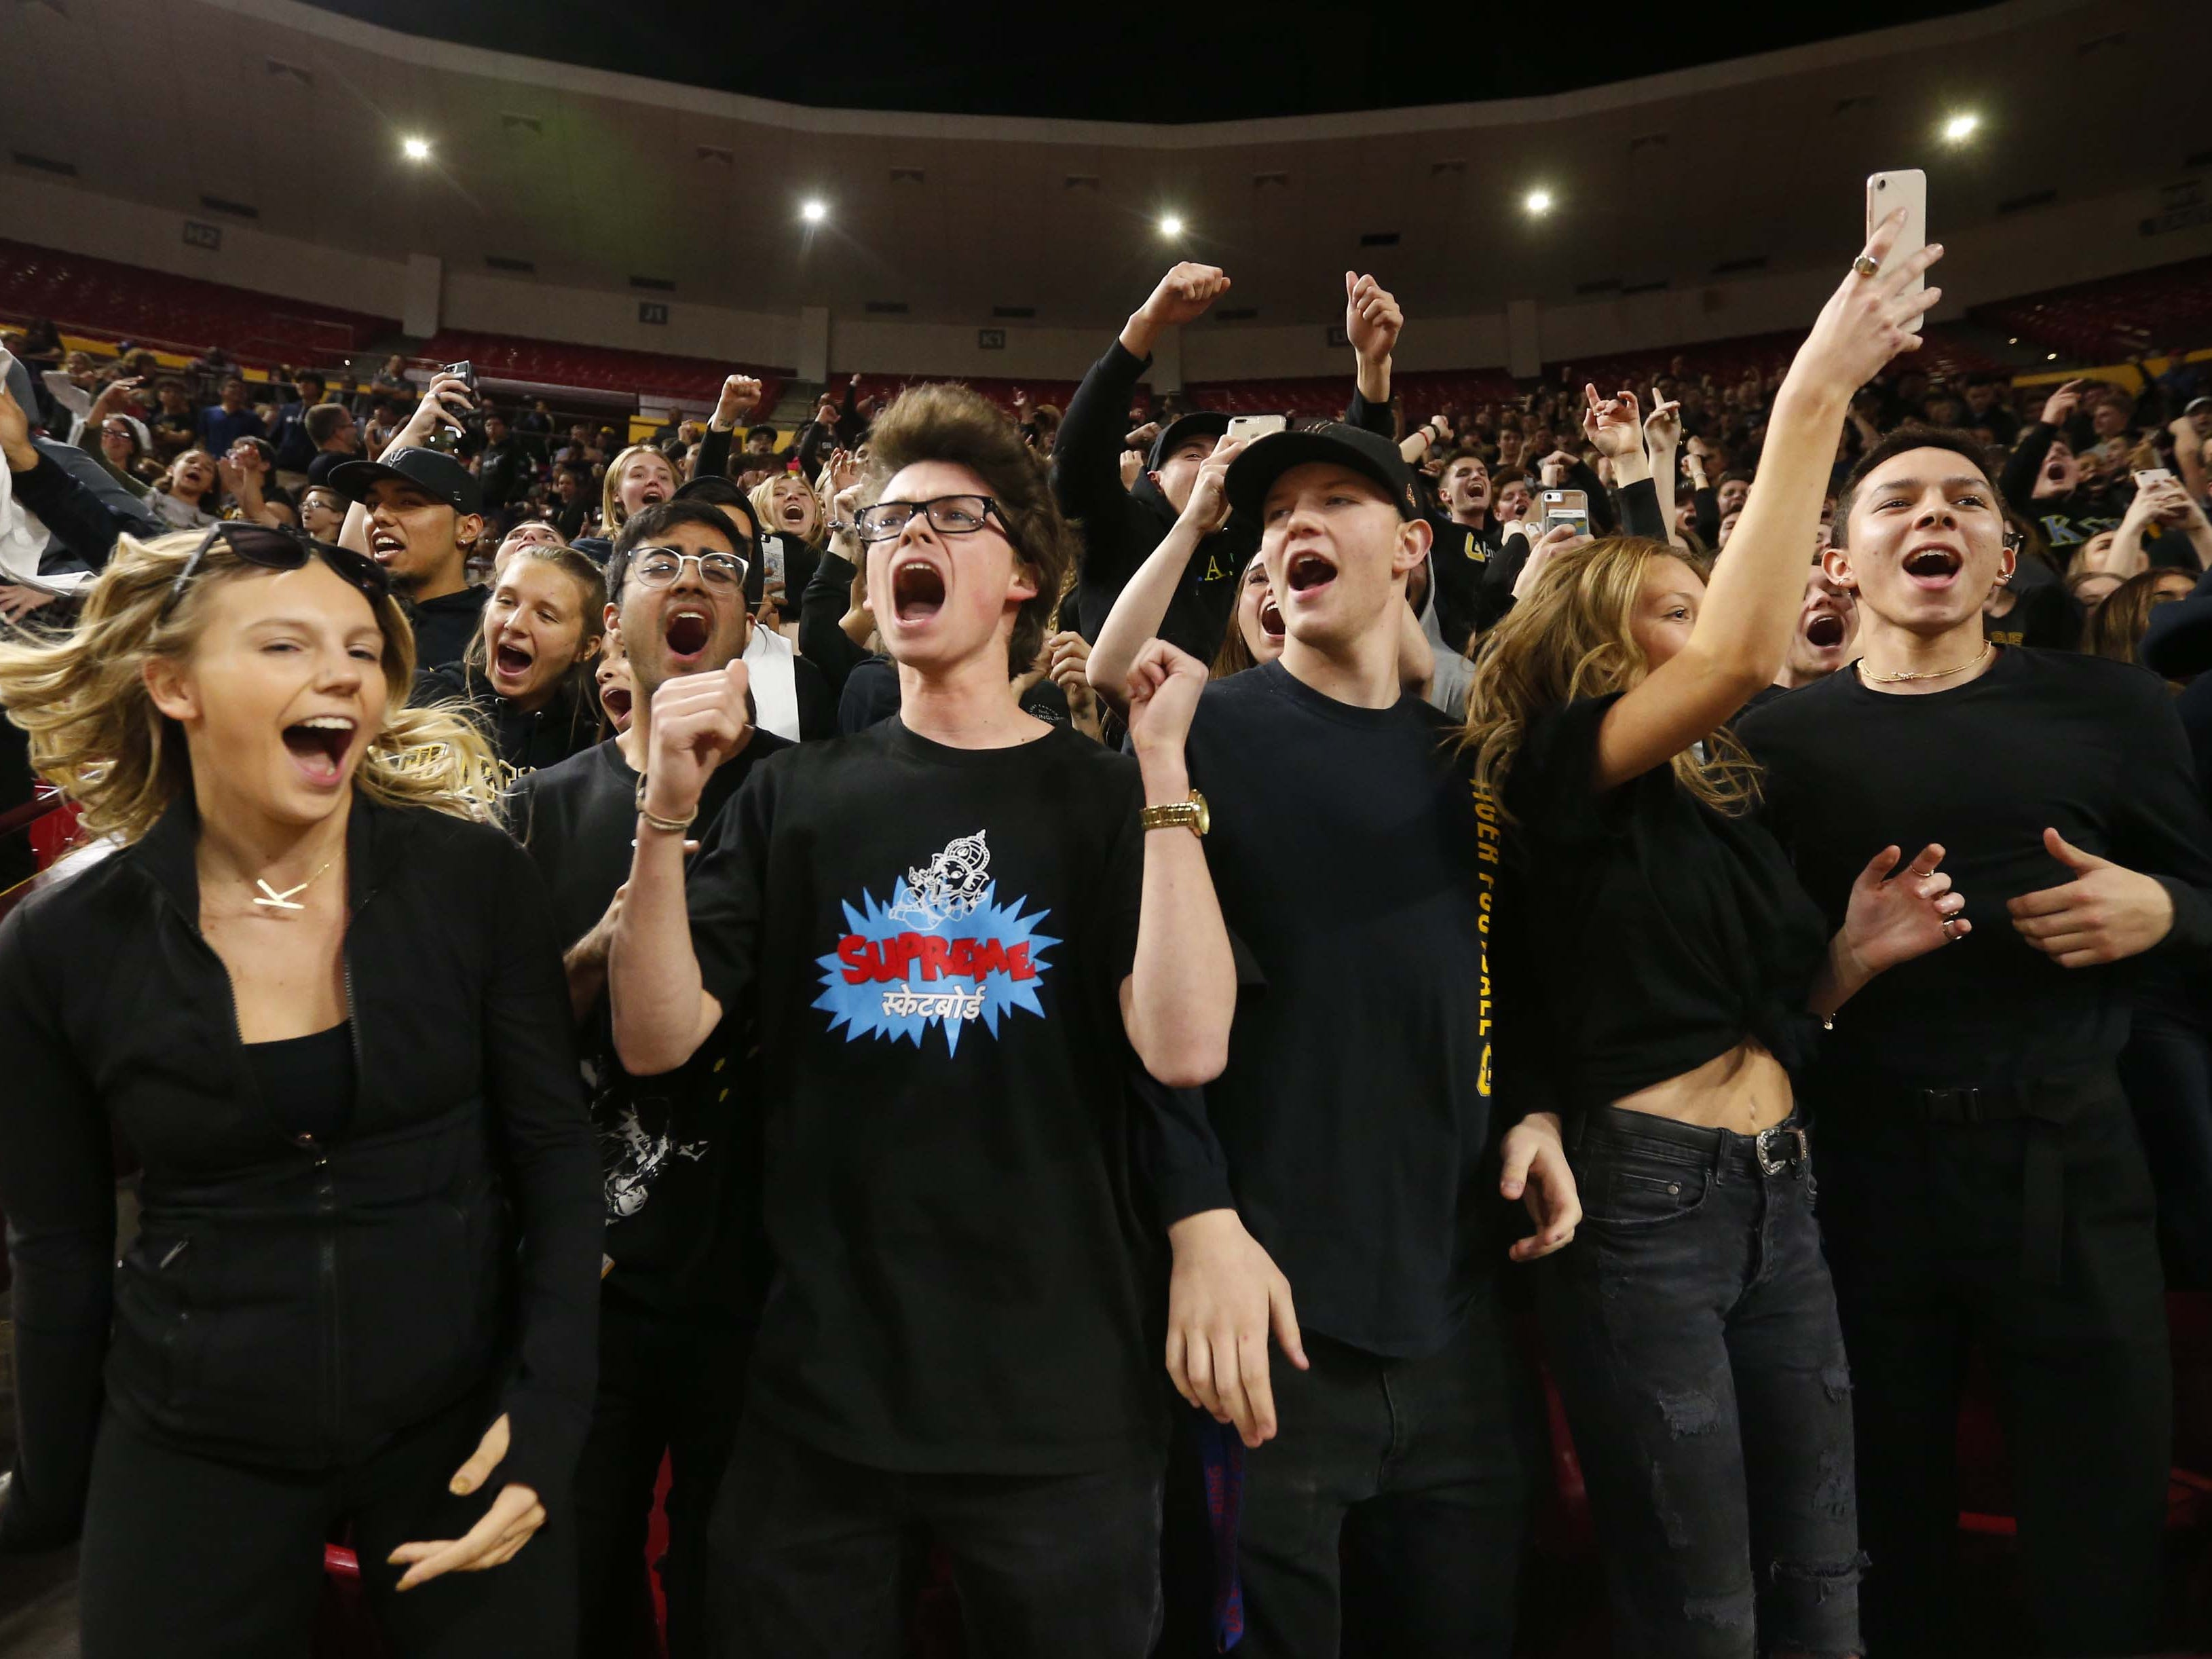 Gilbert students cheer during the Boys State 5A Championship game against Millennium in Tempe, Ariz. Feb. 25, 2019.